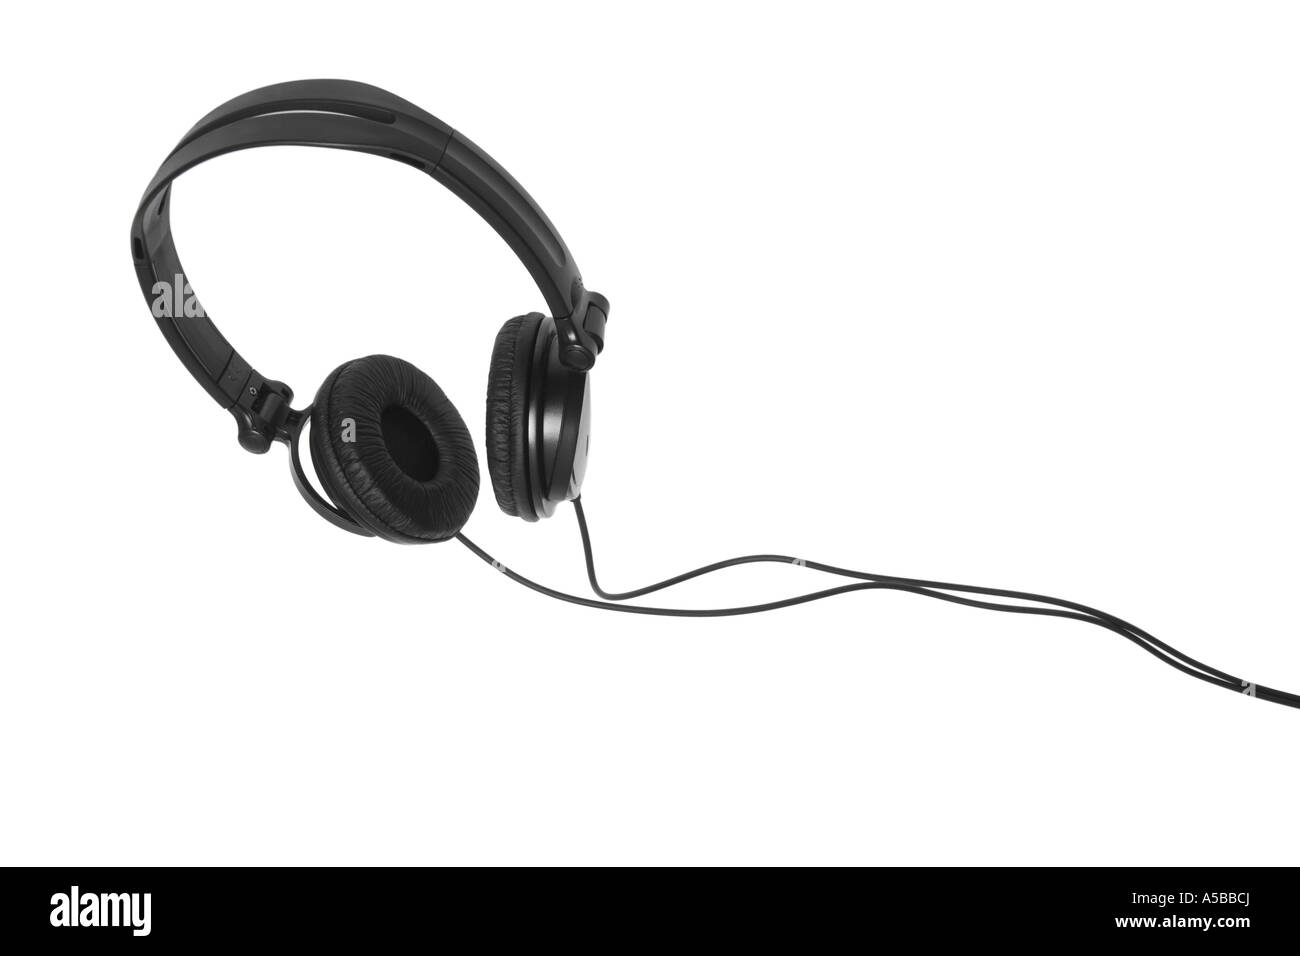 Headphones cut out on white background - Stock Image